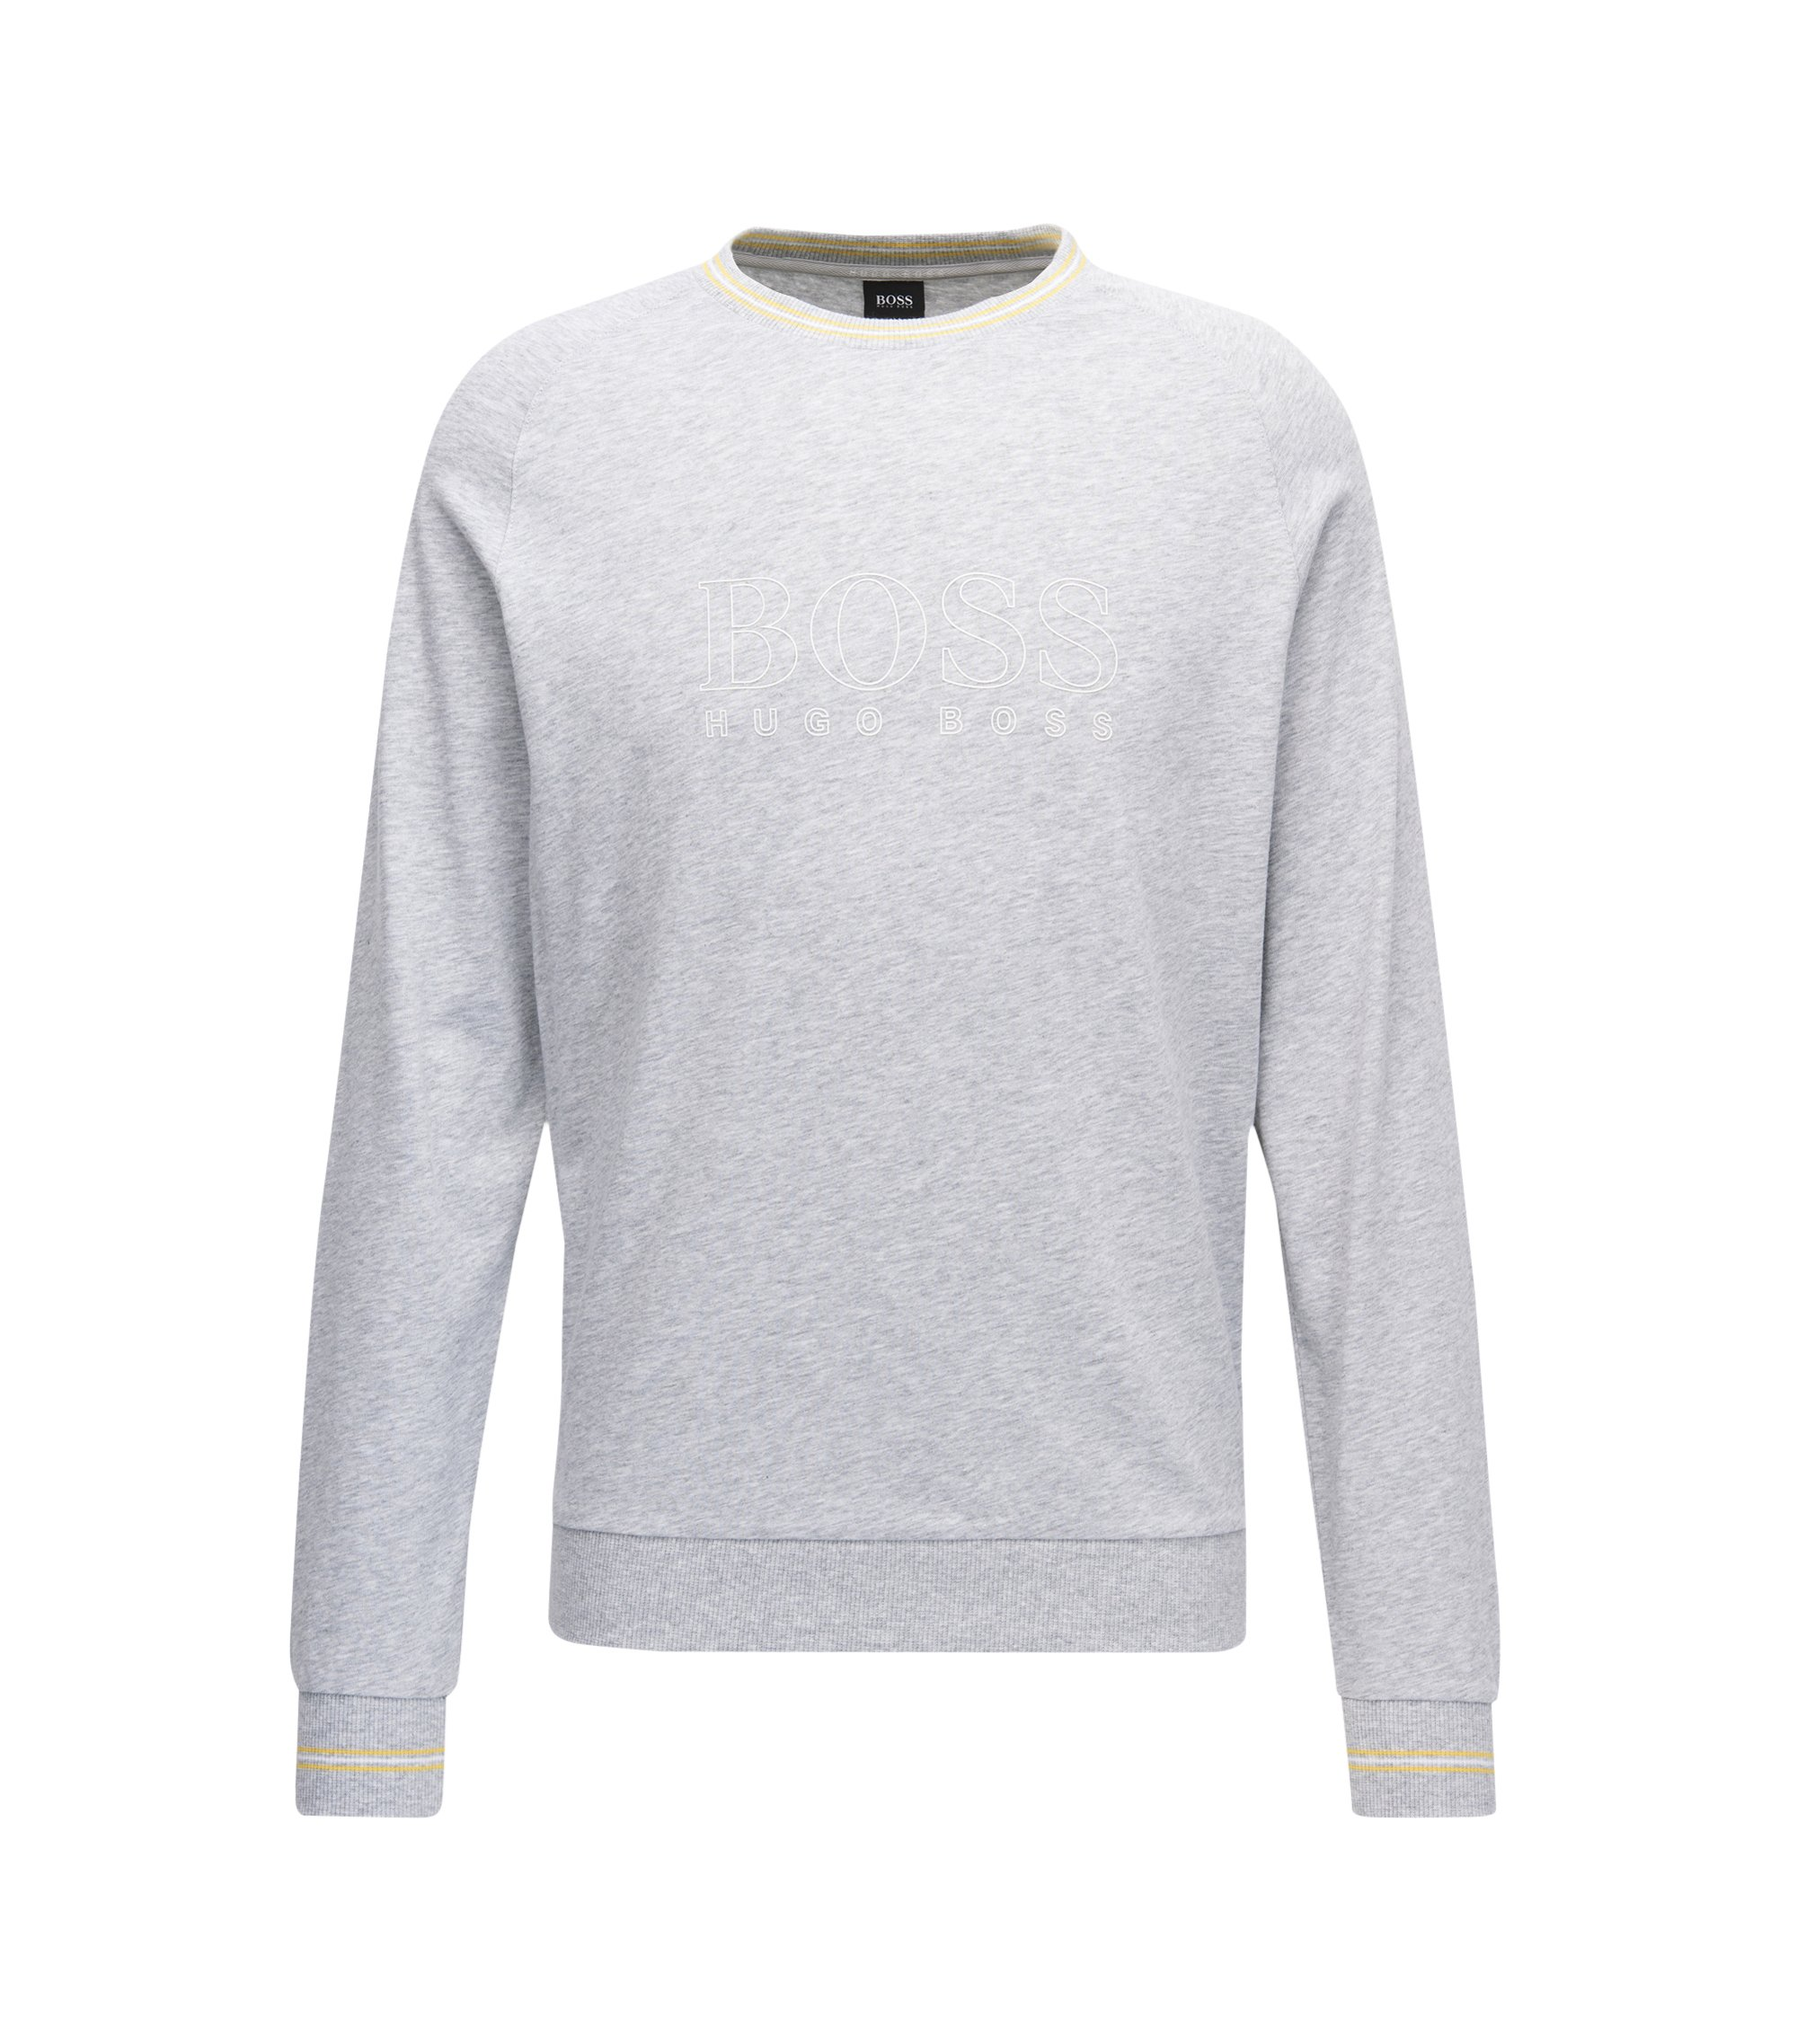 Crew-neck loungewear sweatshirt in cotton jersey, Grey